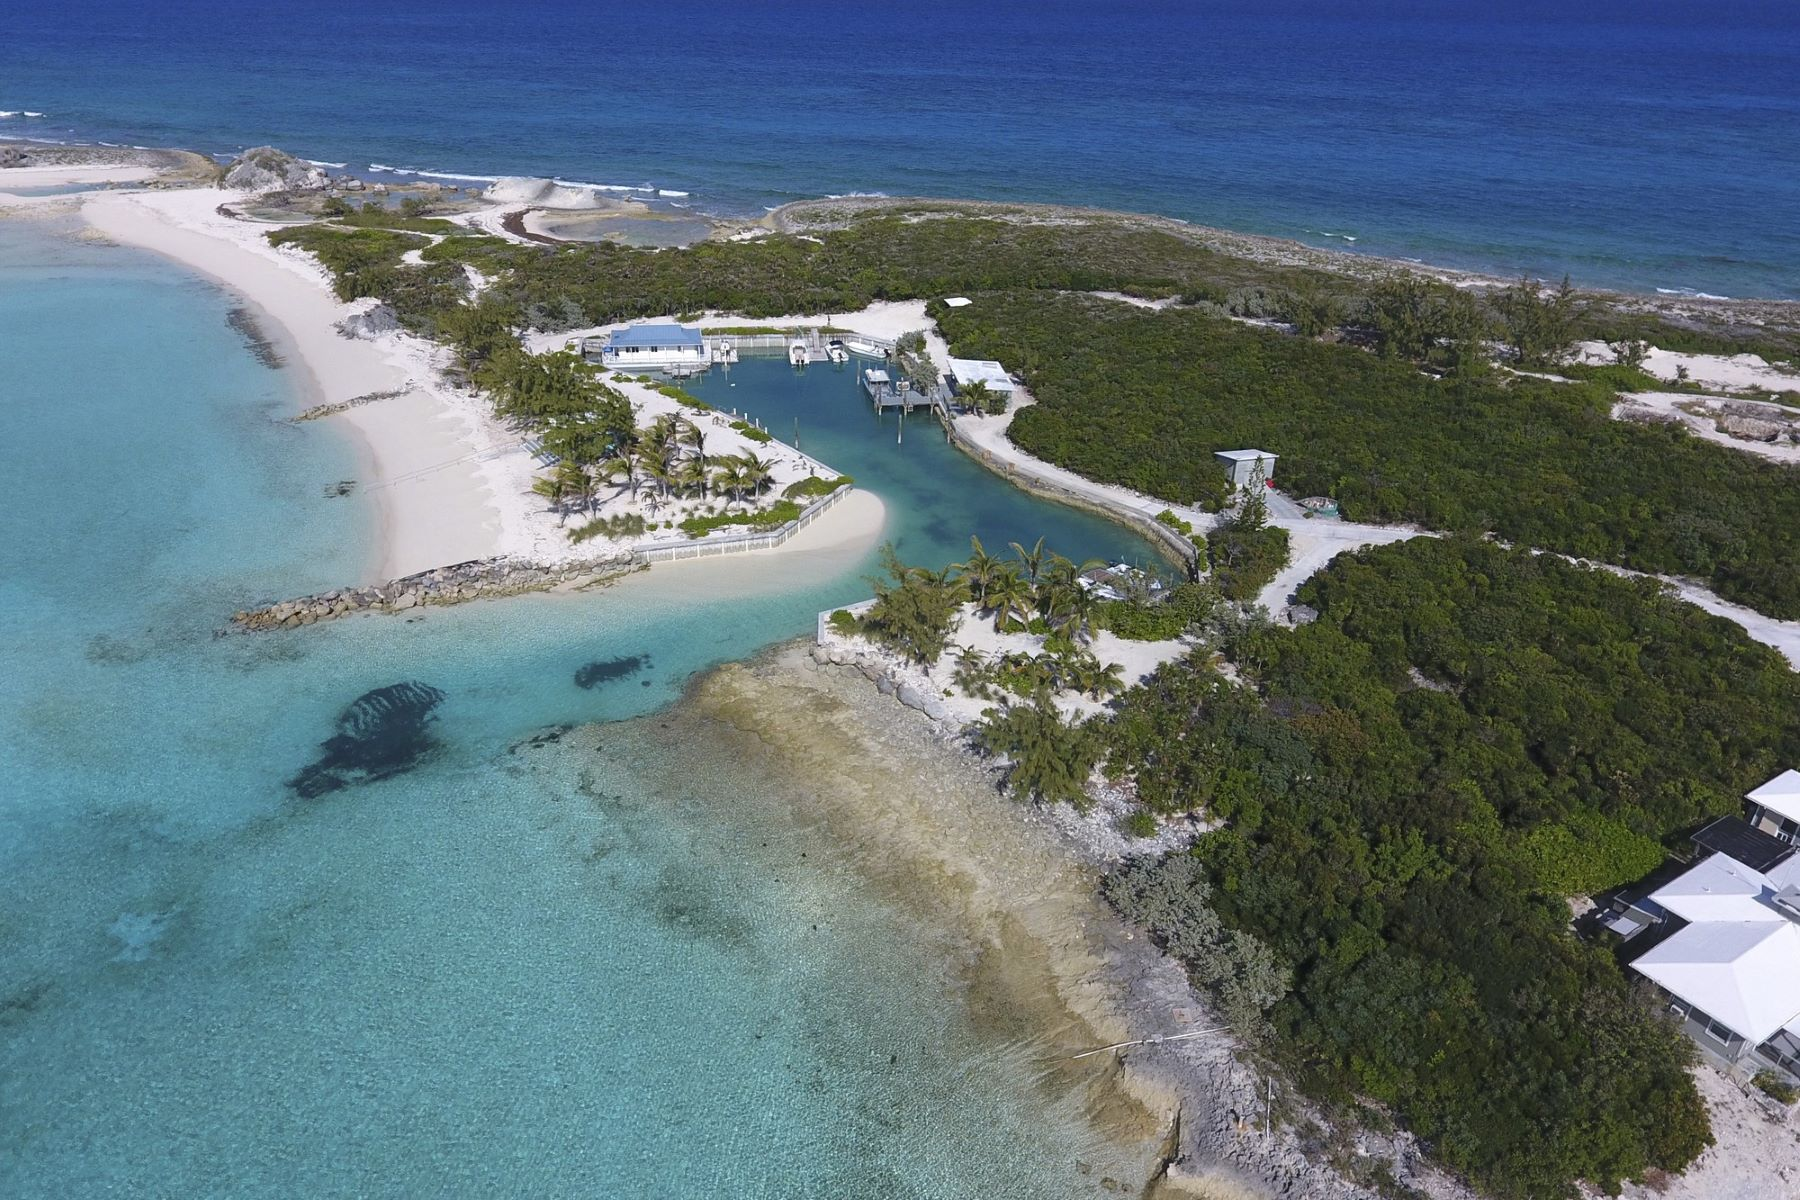 Property for Sale at Private Island Exuma Exuma Cays, Exuma Bahamas